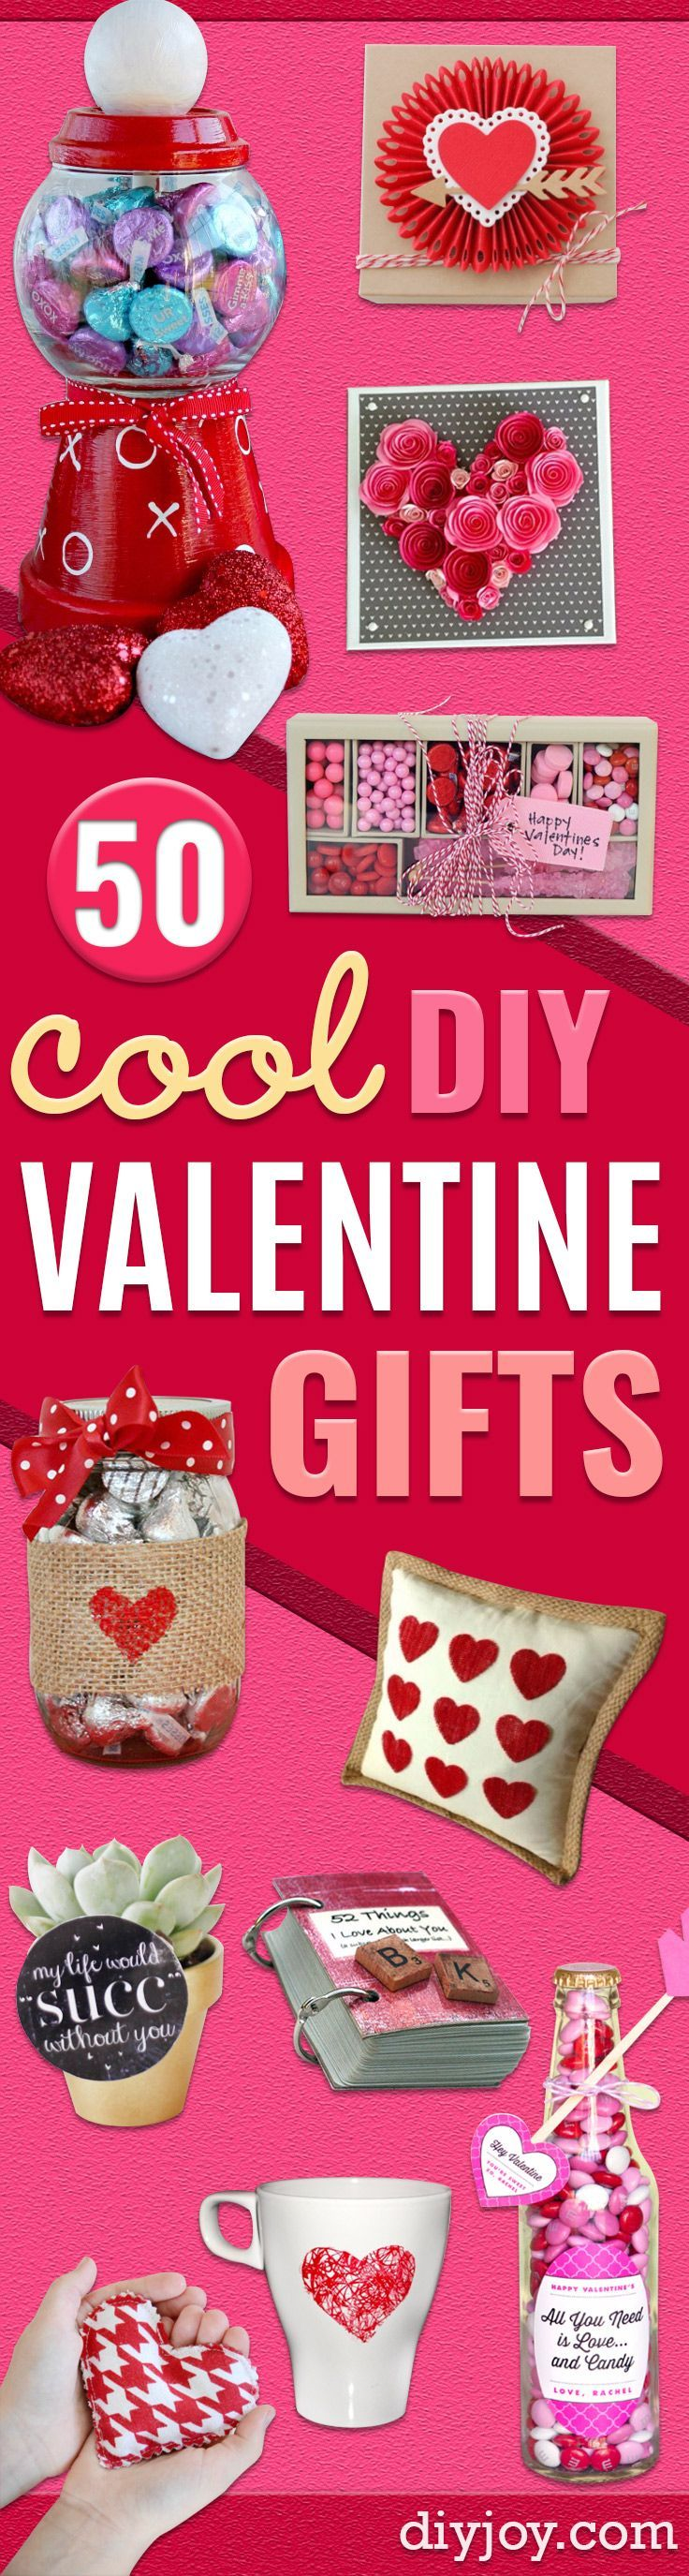 Best DIY Valentines Day Gifts - Cute Mason Jar Valentines Day Gifts and Crafts for Him and Her Boyfriend, Girlfriend, Mom and Dad, Husband or Wife, Friends - Easy DIY Ideas for Valentines Day for Homemade Gift Giving and Room Decor Creative Home Deco